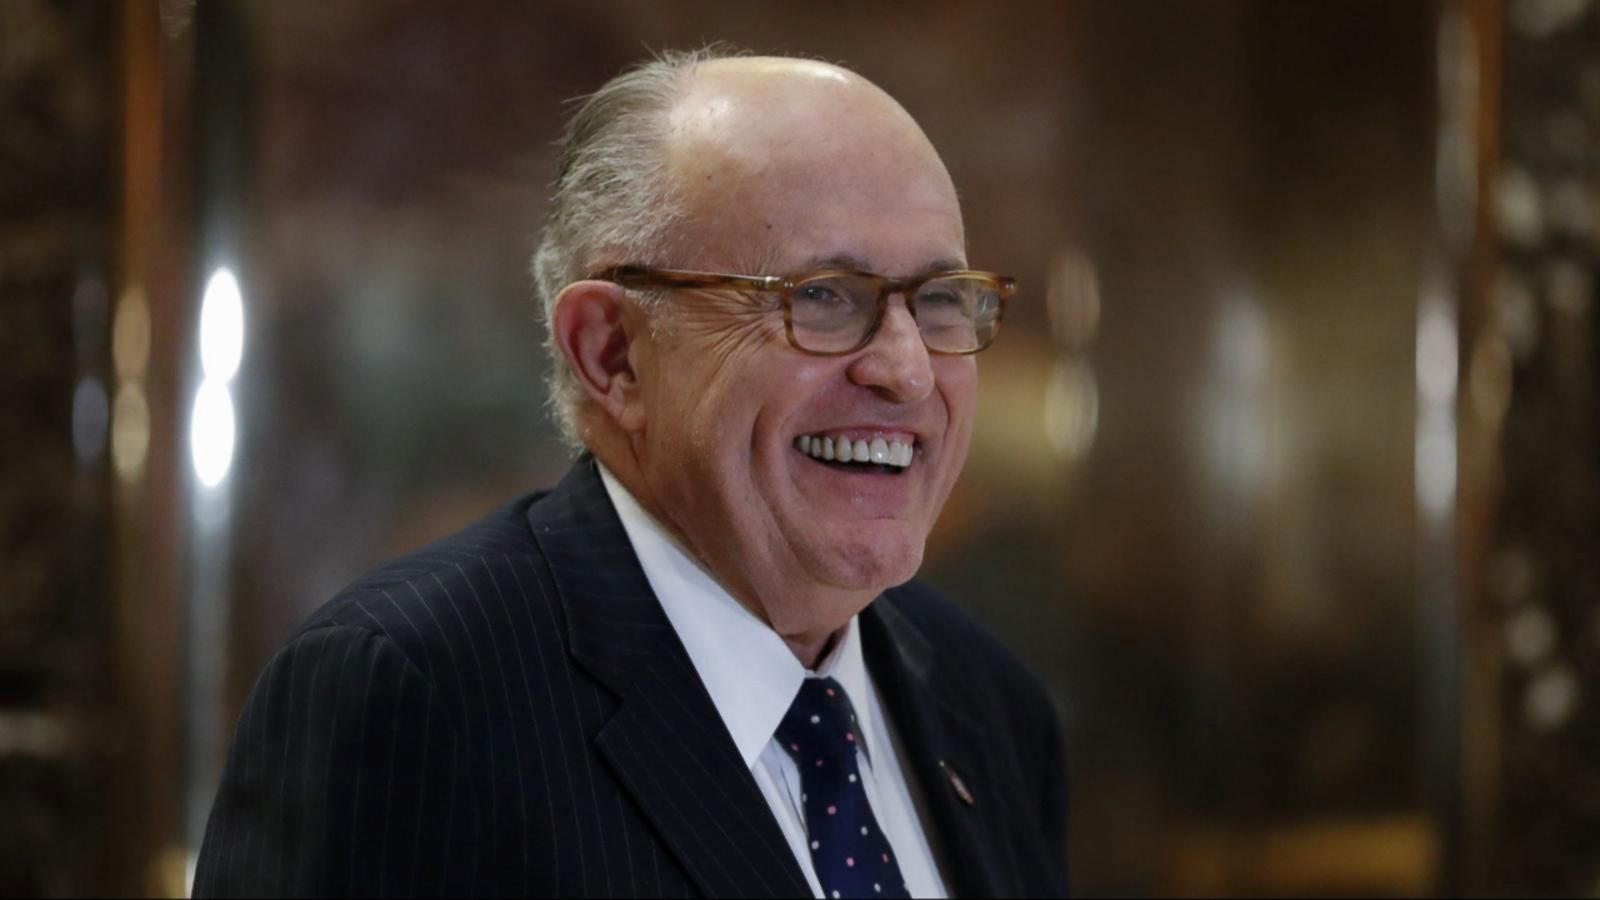 VIDEO: Rudy Giuliani Removes Himself From Consideration for Secretary of State